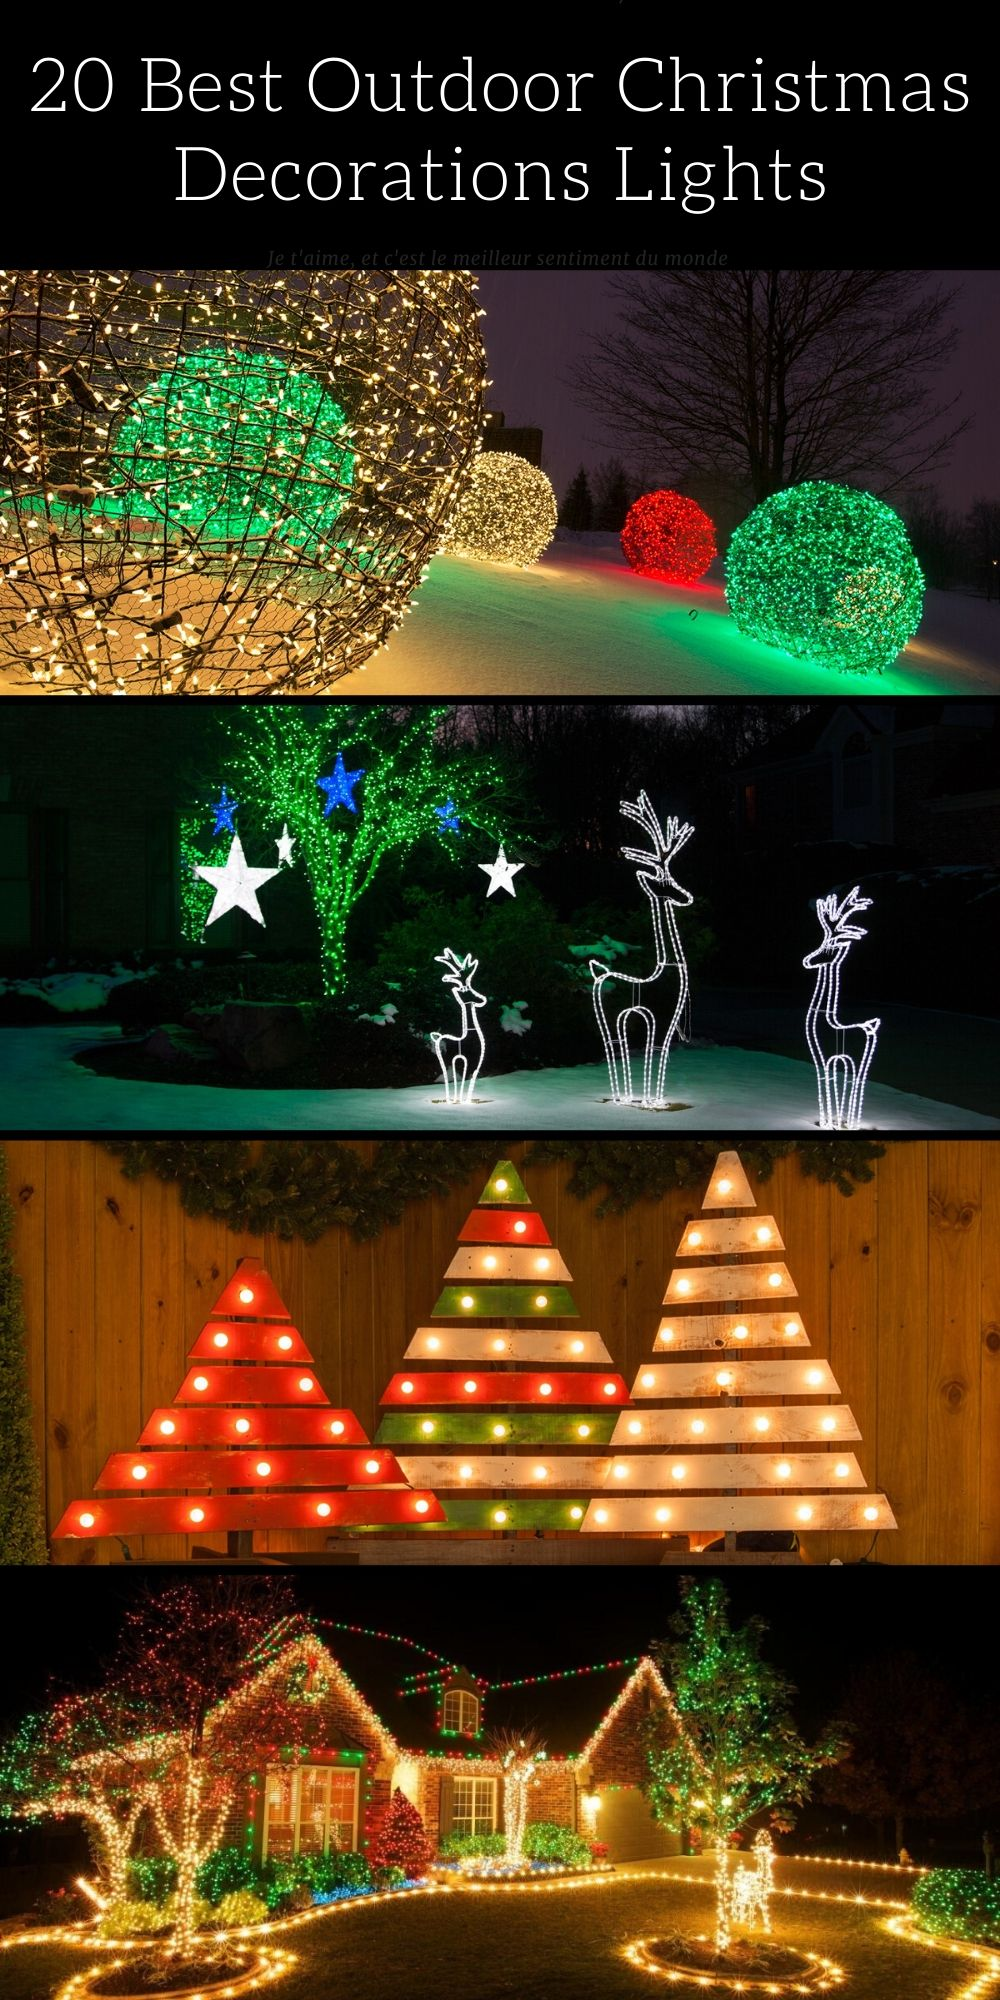 20 Best Outdoor Christmas Decorations Lights Id Lights